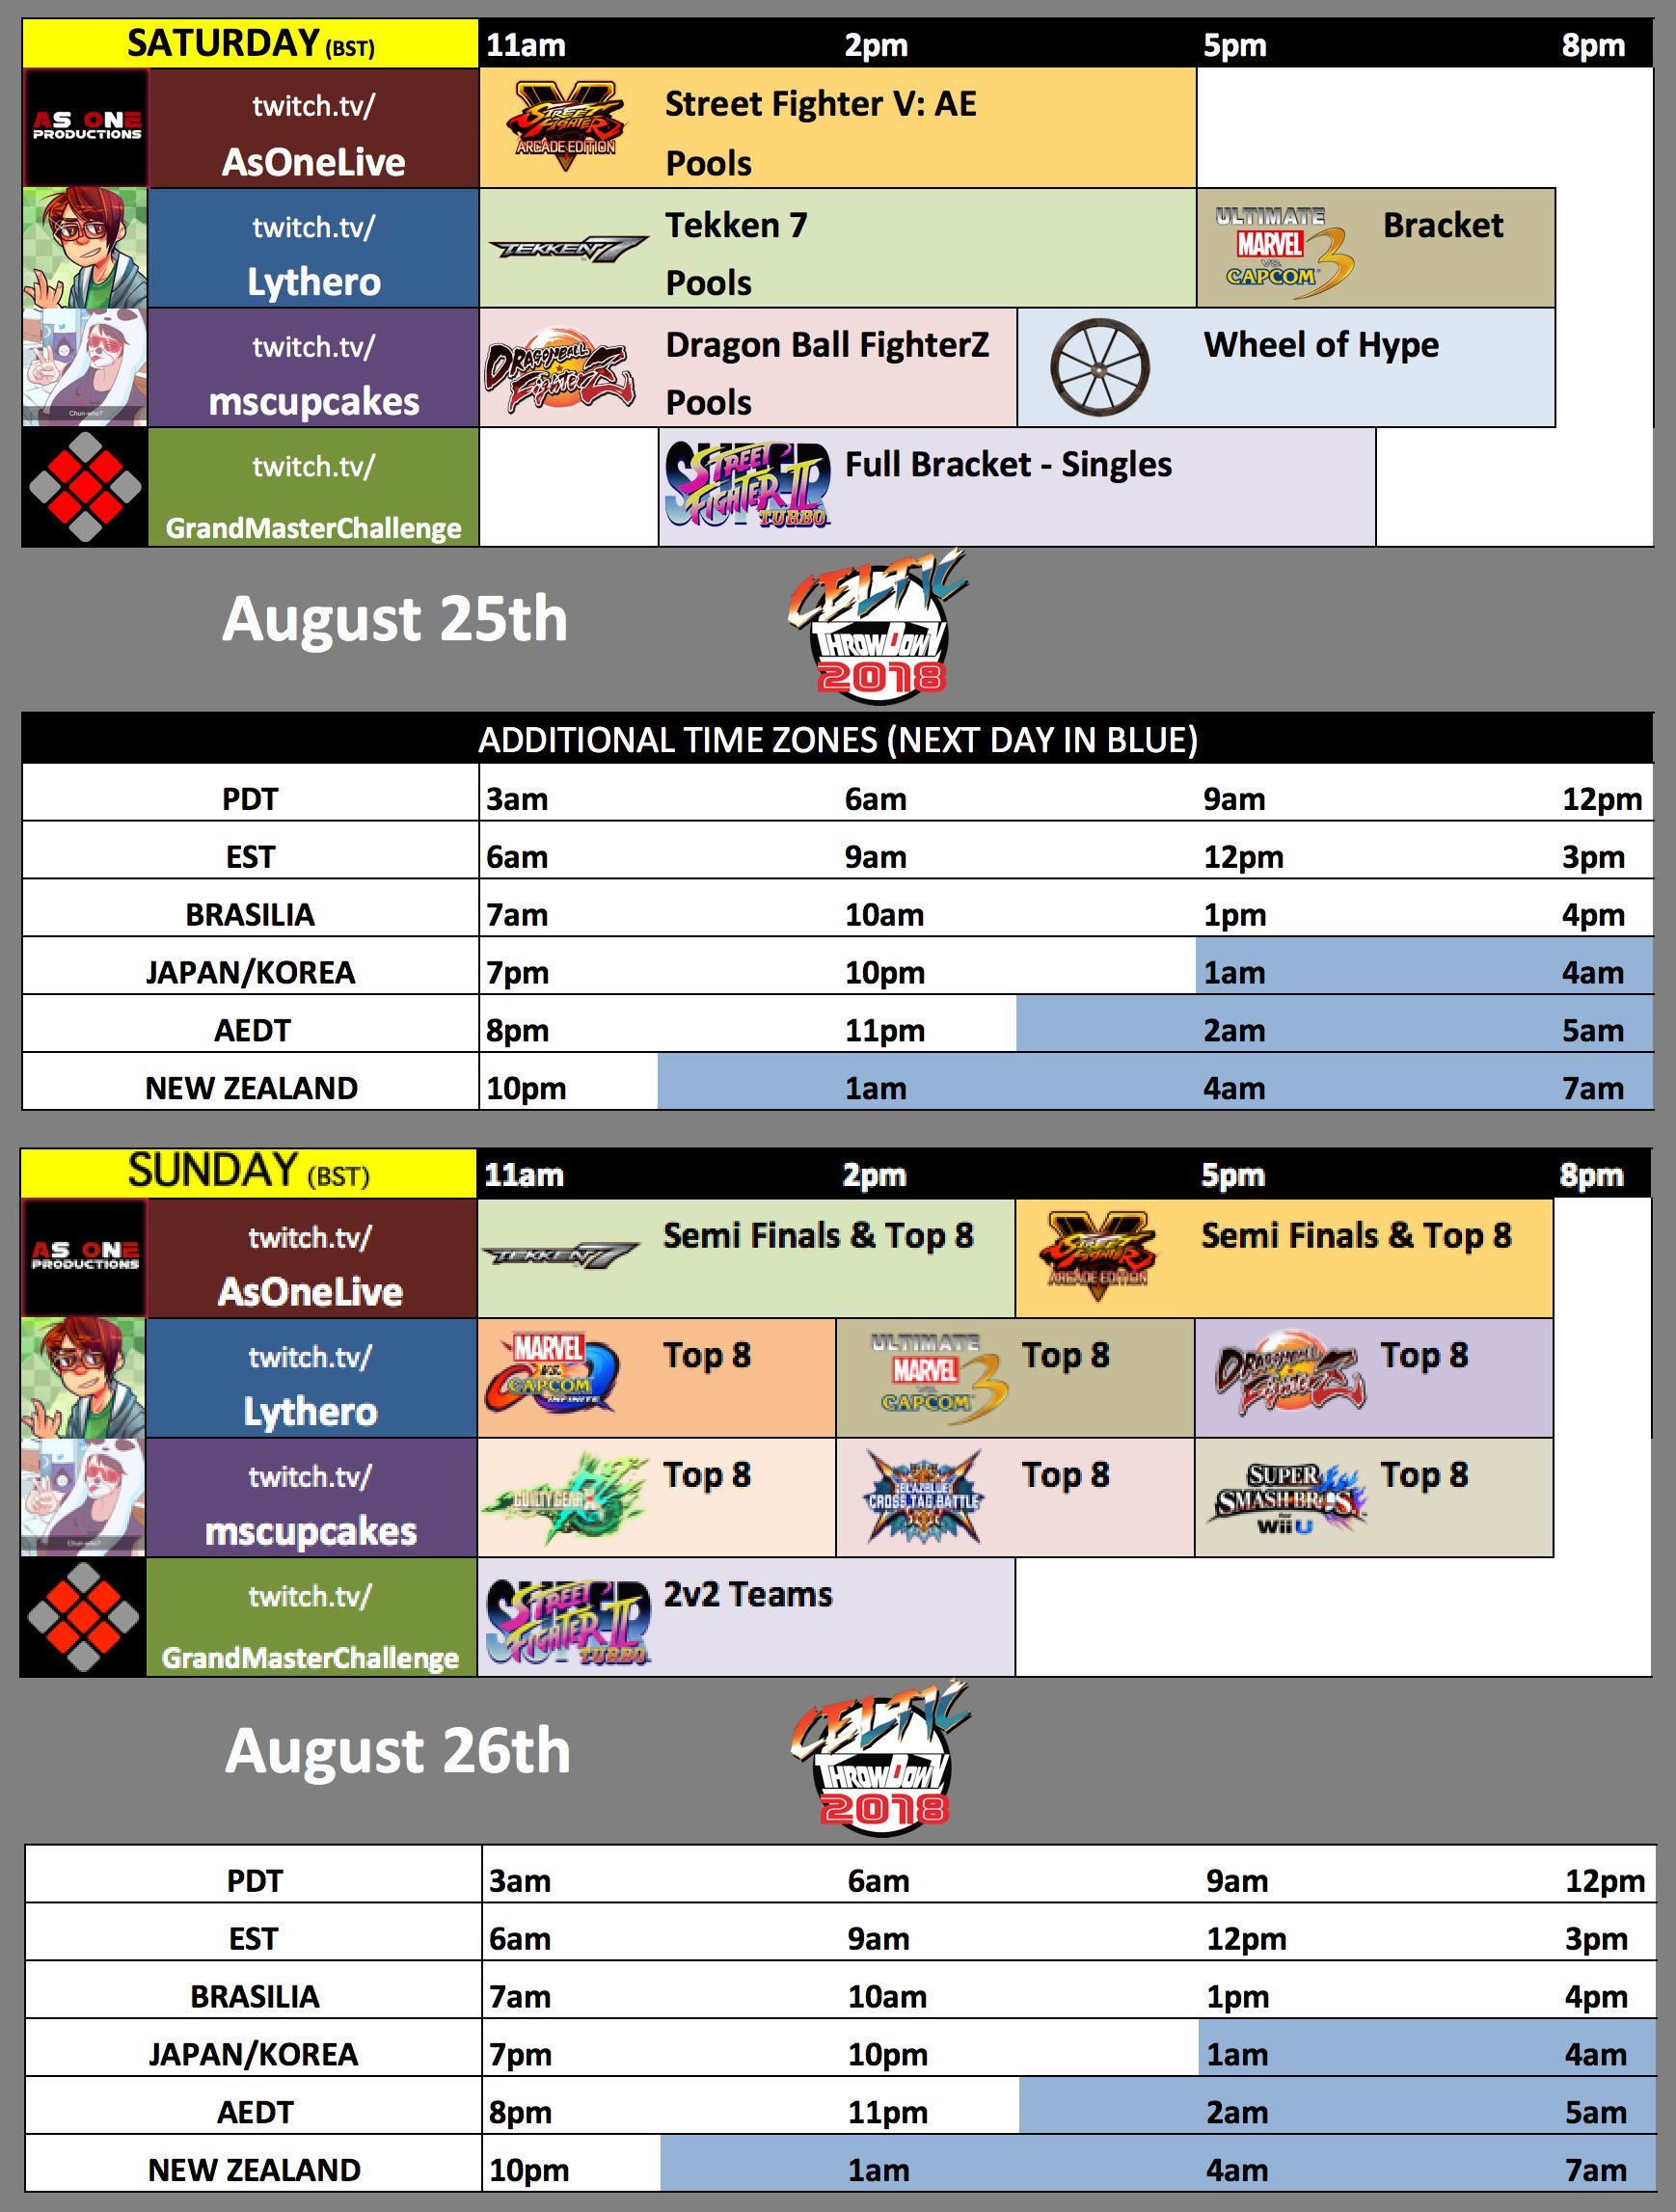 Celtic Throwdown 2018 Event Schedule 1 out of 1 image gallery